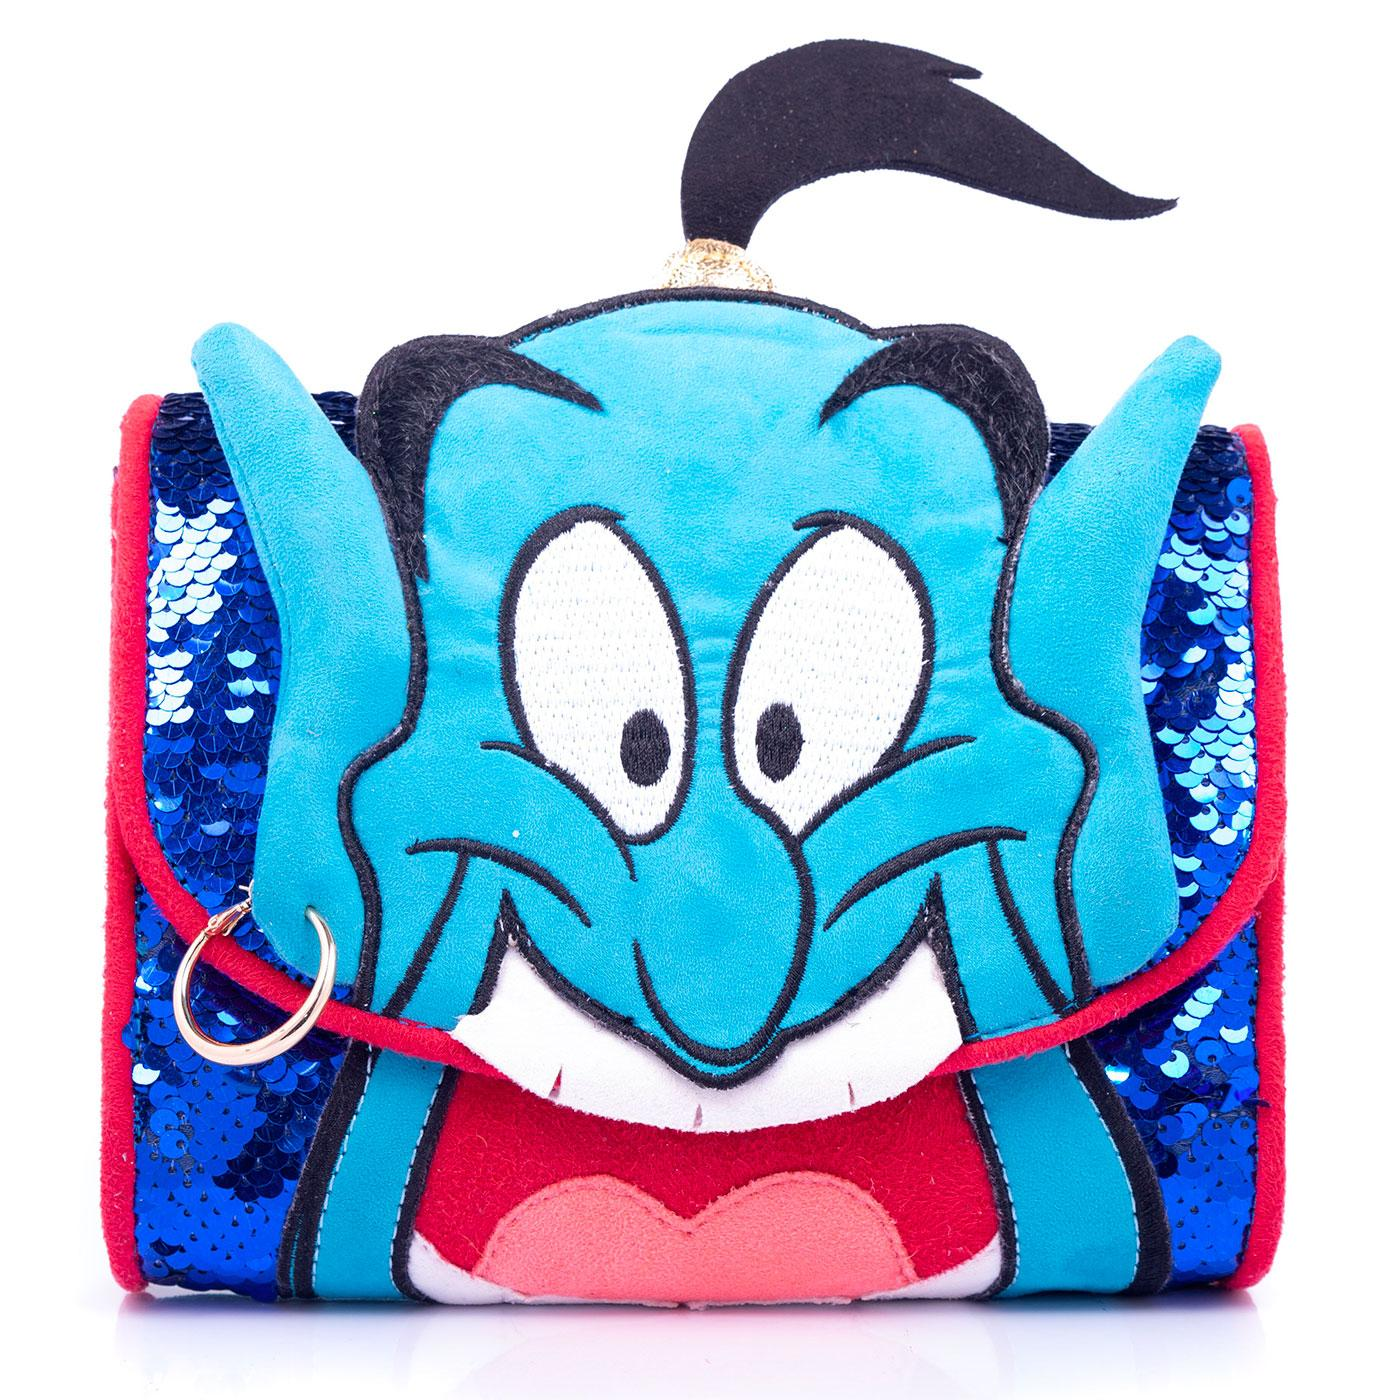 At Your Service! IRREGULAR CHOICE Disney Genie Bag